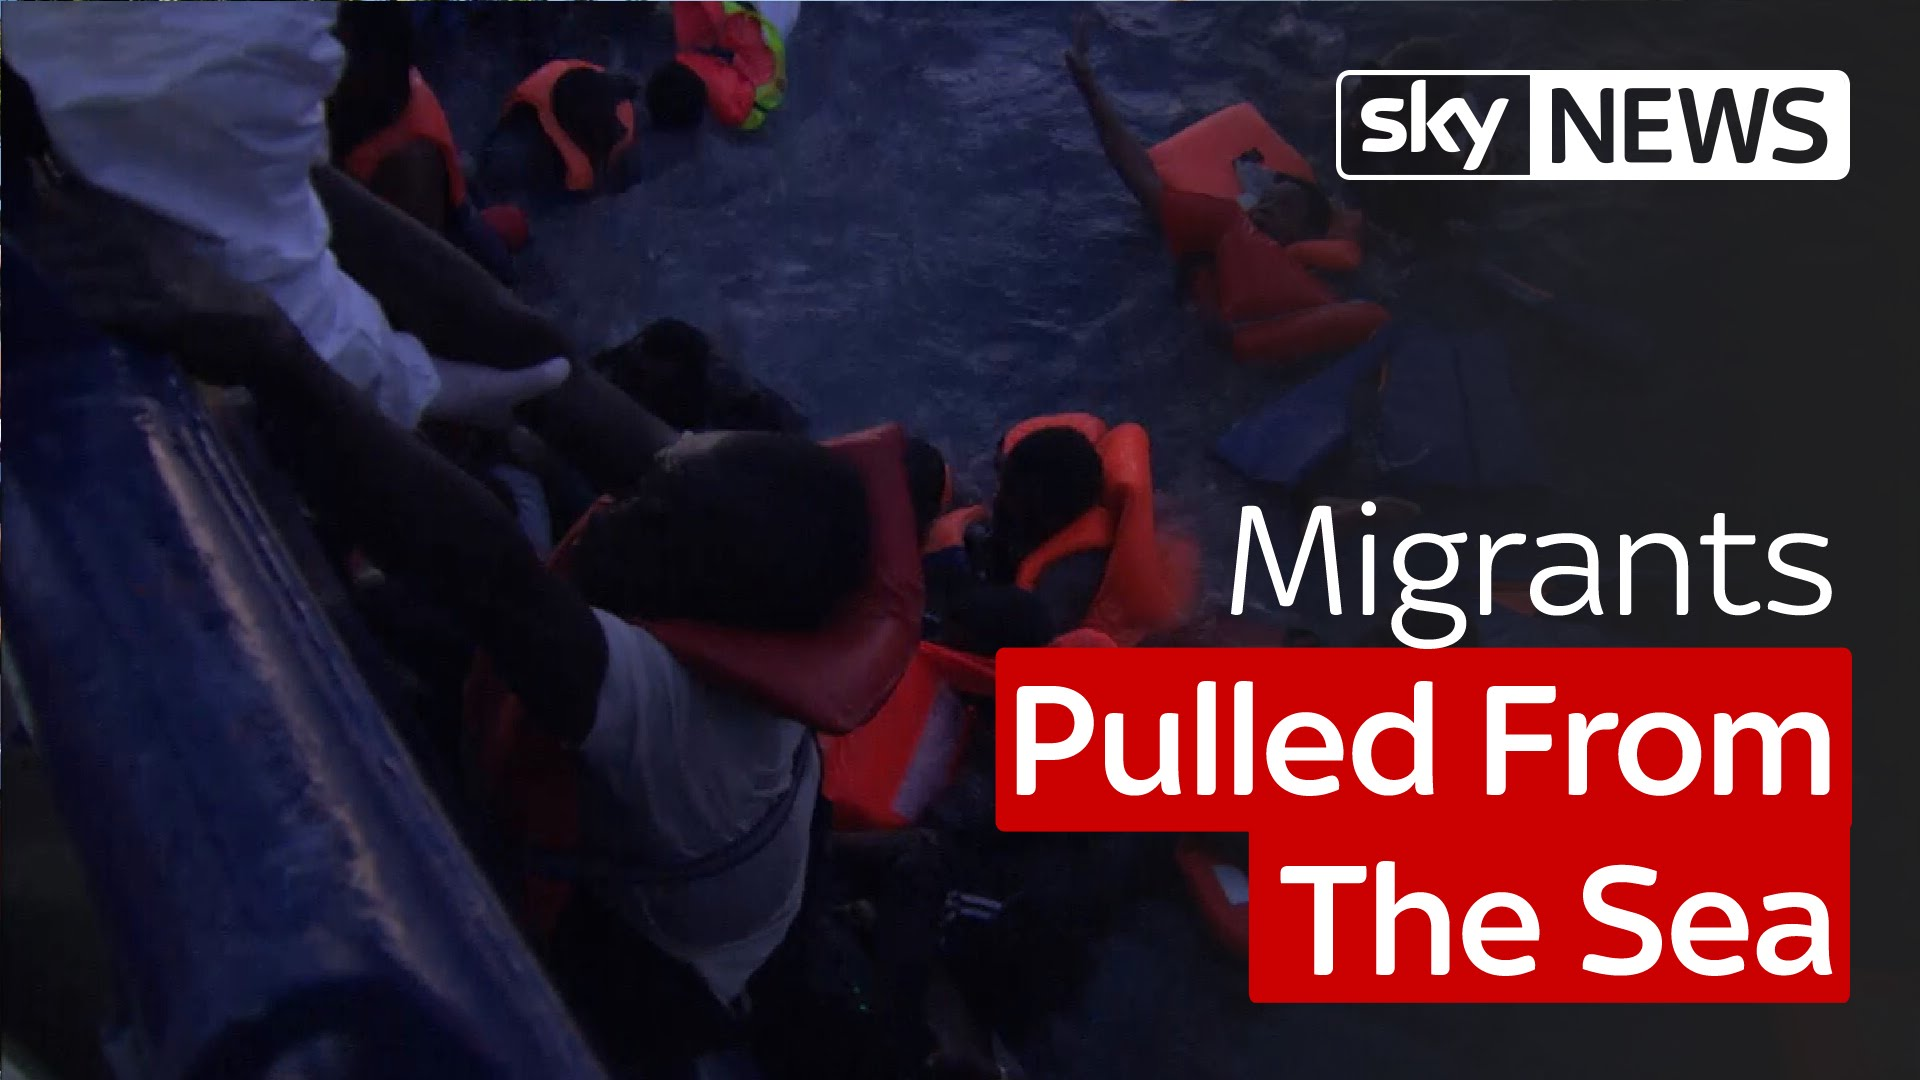 Migrants Pulled From The Sea 1